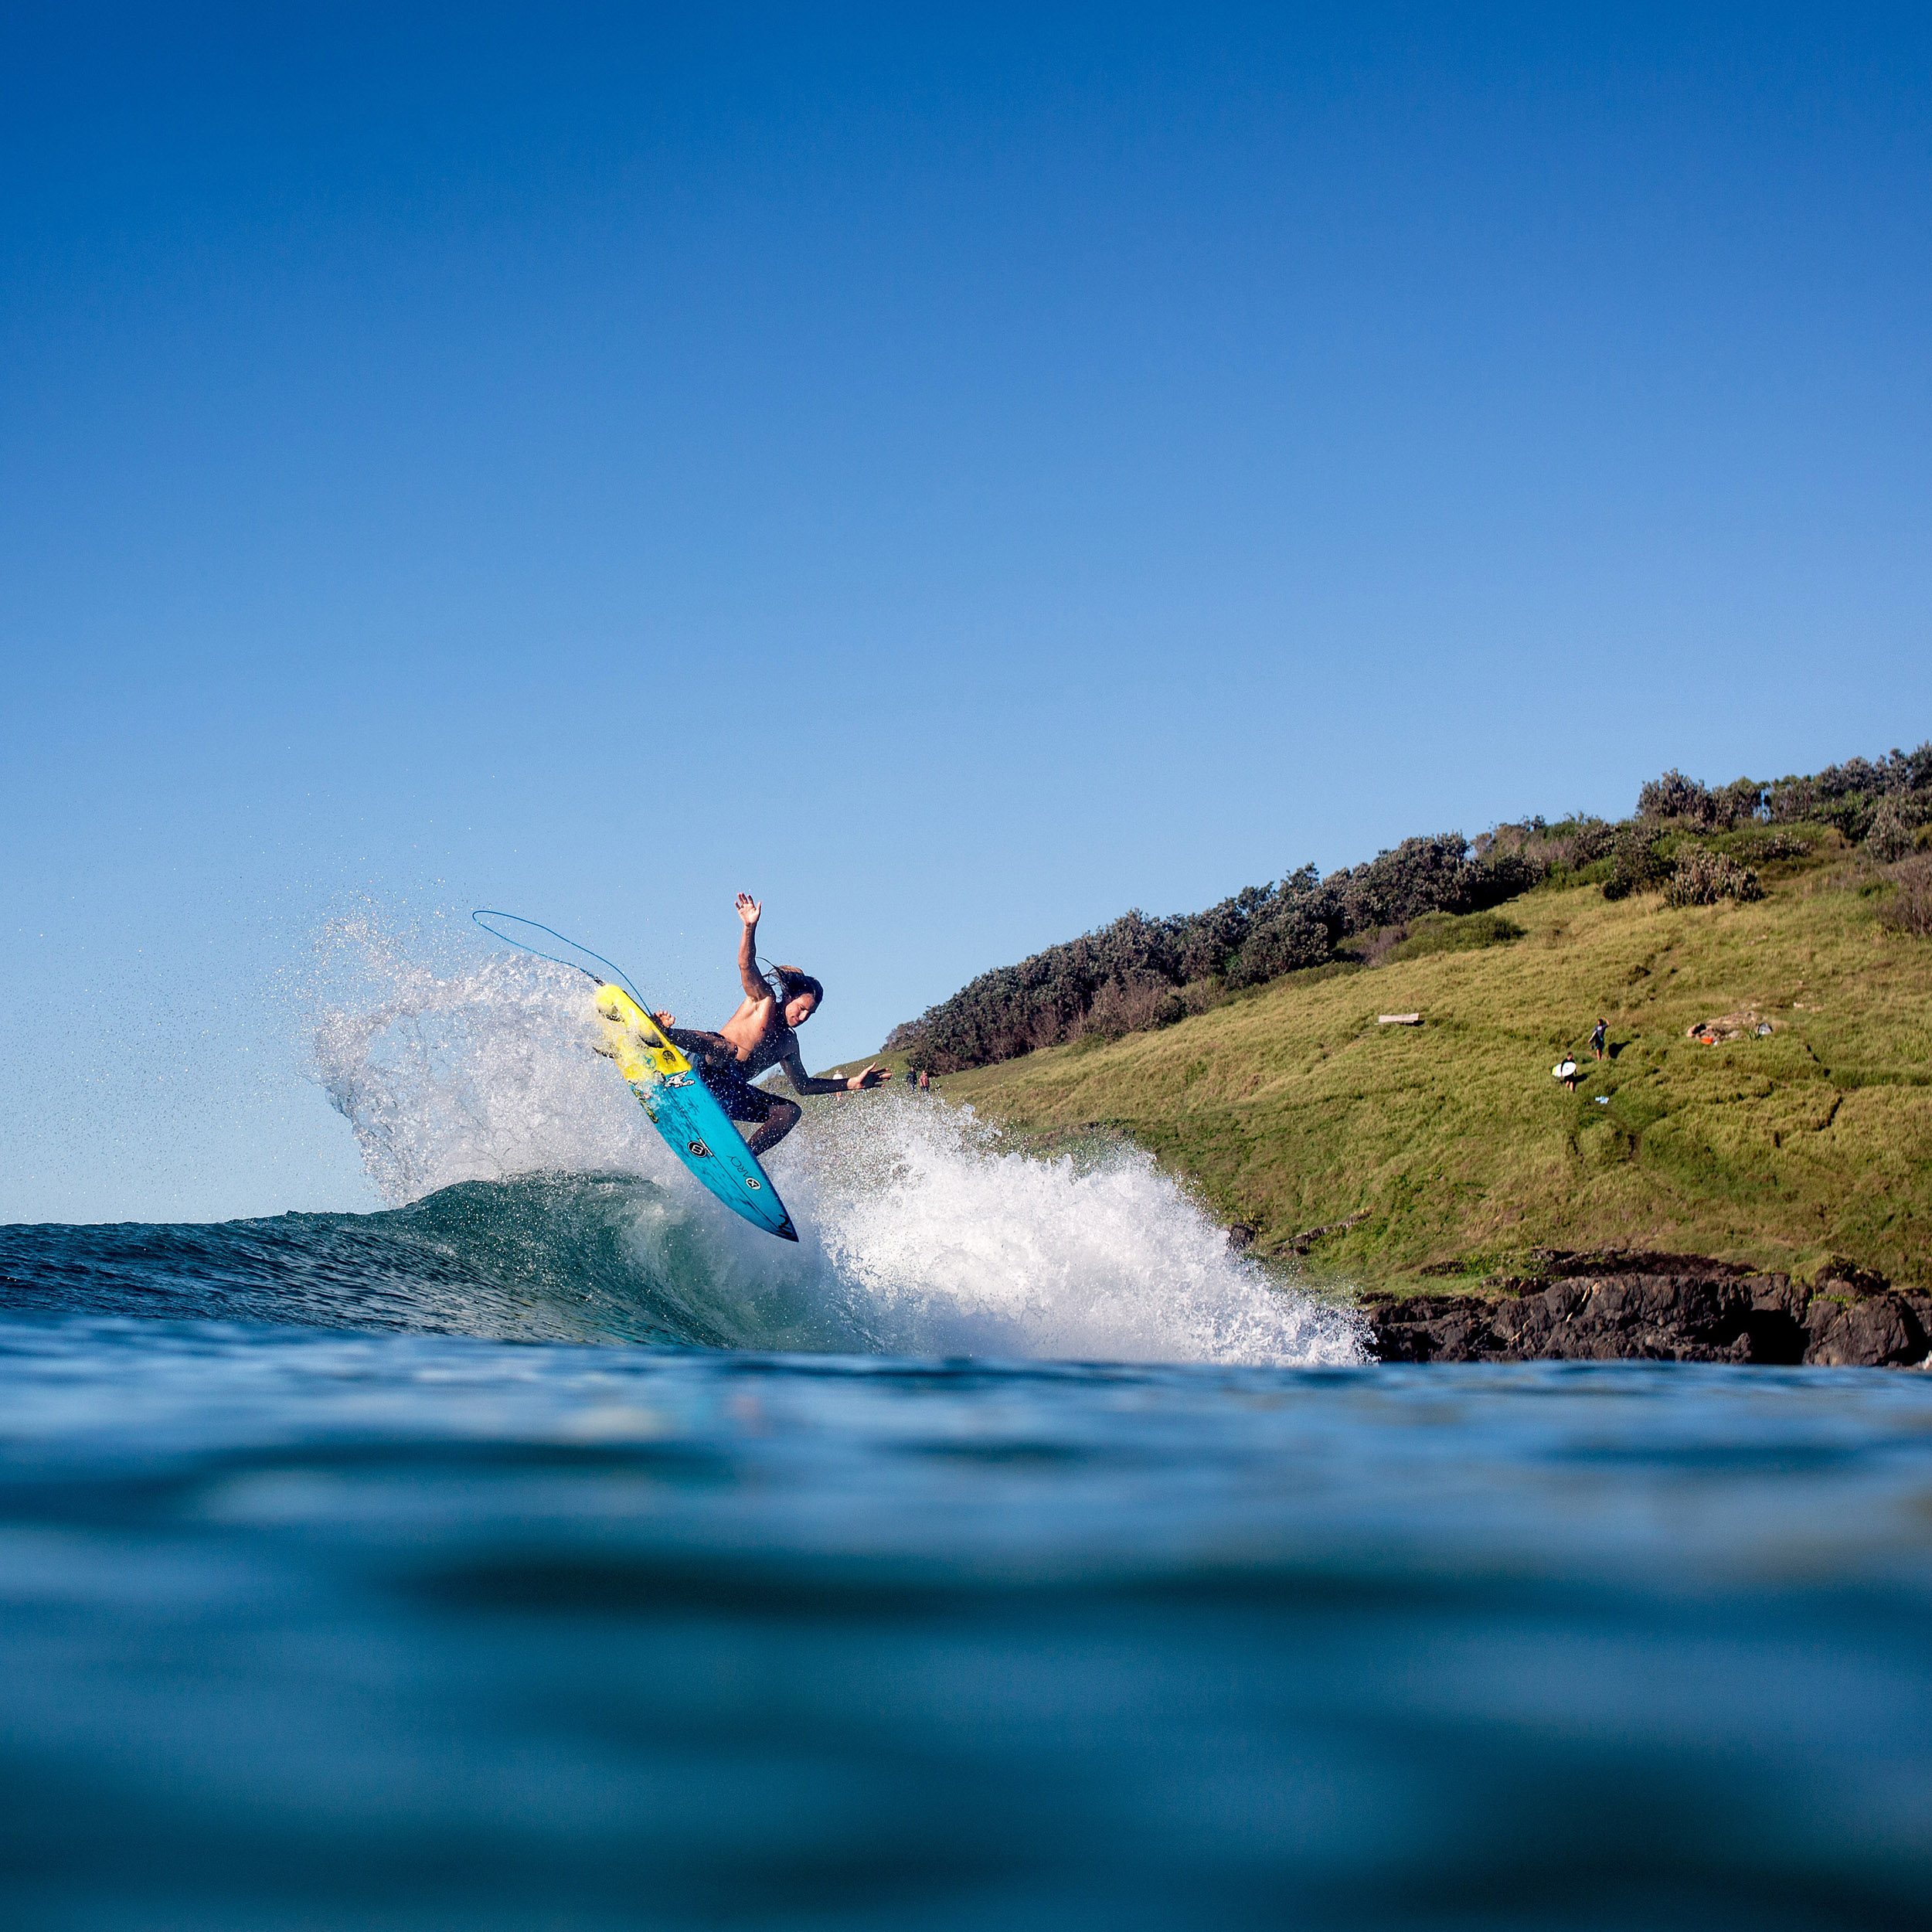 surfing-nsw-coast.jpg